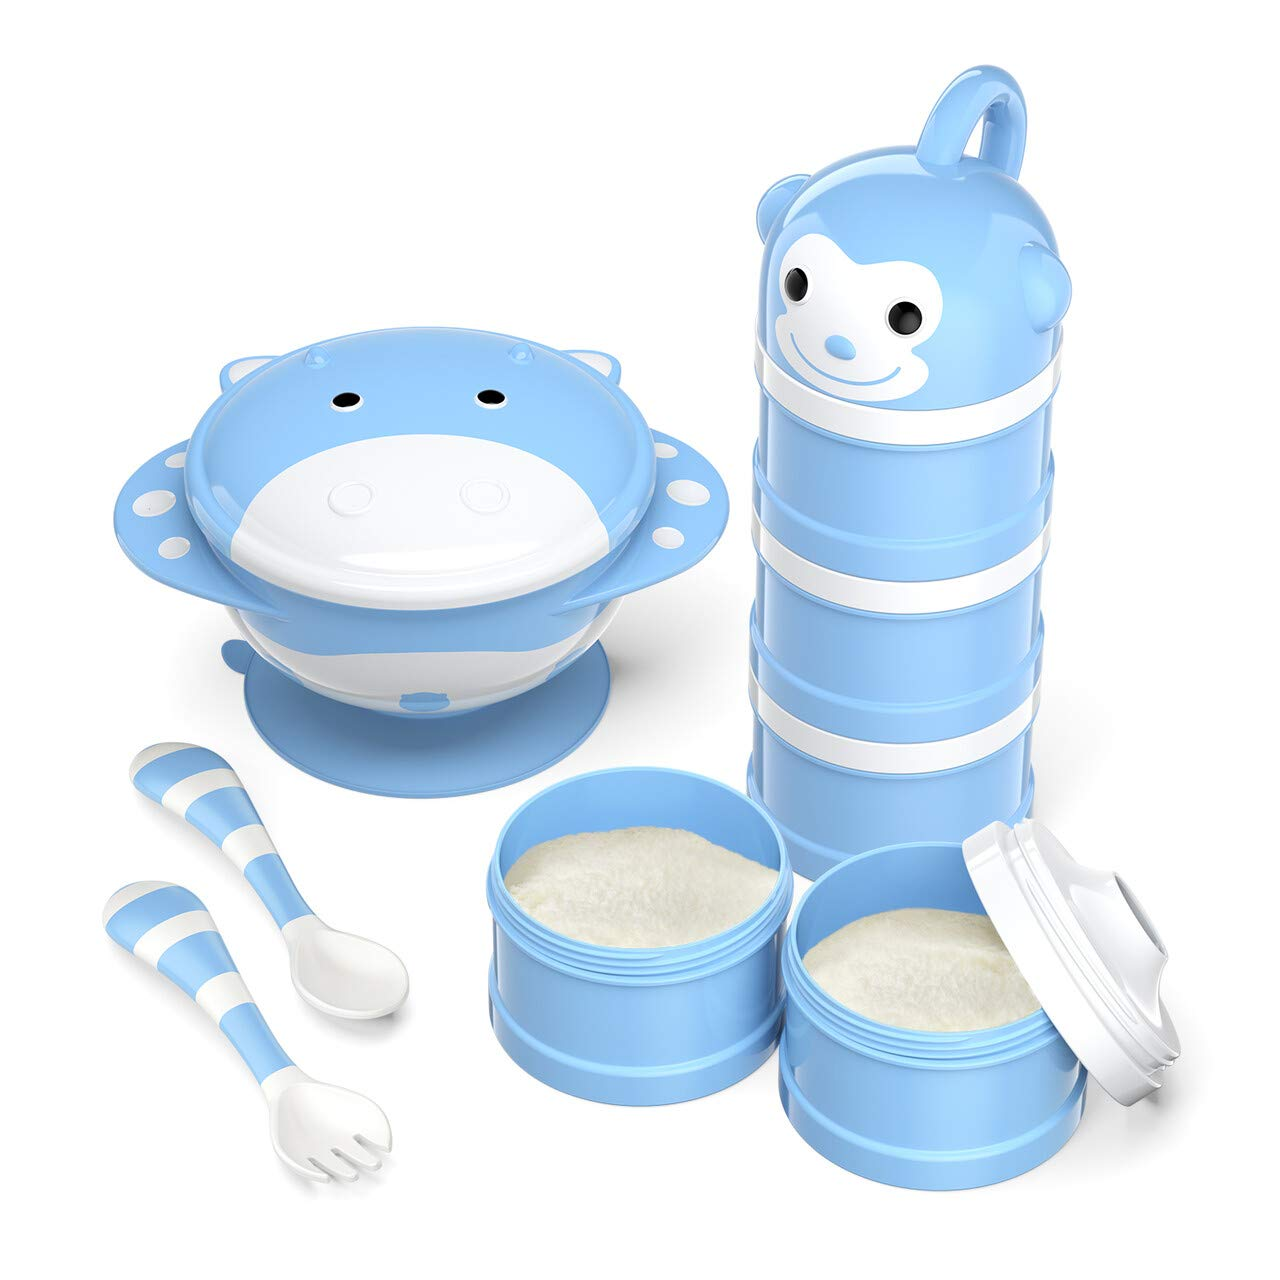 Babyking Baby Feeding Set, Harmless & Cartoon, Baby Suction Bowl Set, Children Tableware Set, Suction Bowl, Spoons Forks Set, Milk Powder Dispensers für Baby'S 3 Meals (Blue)